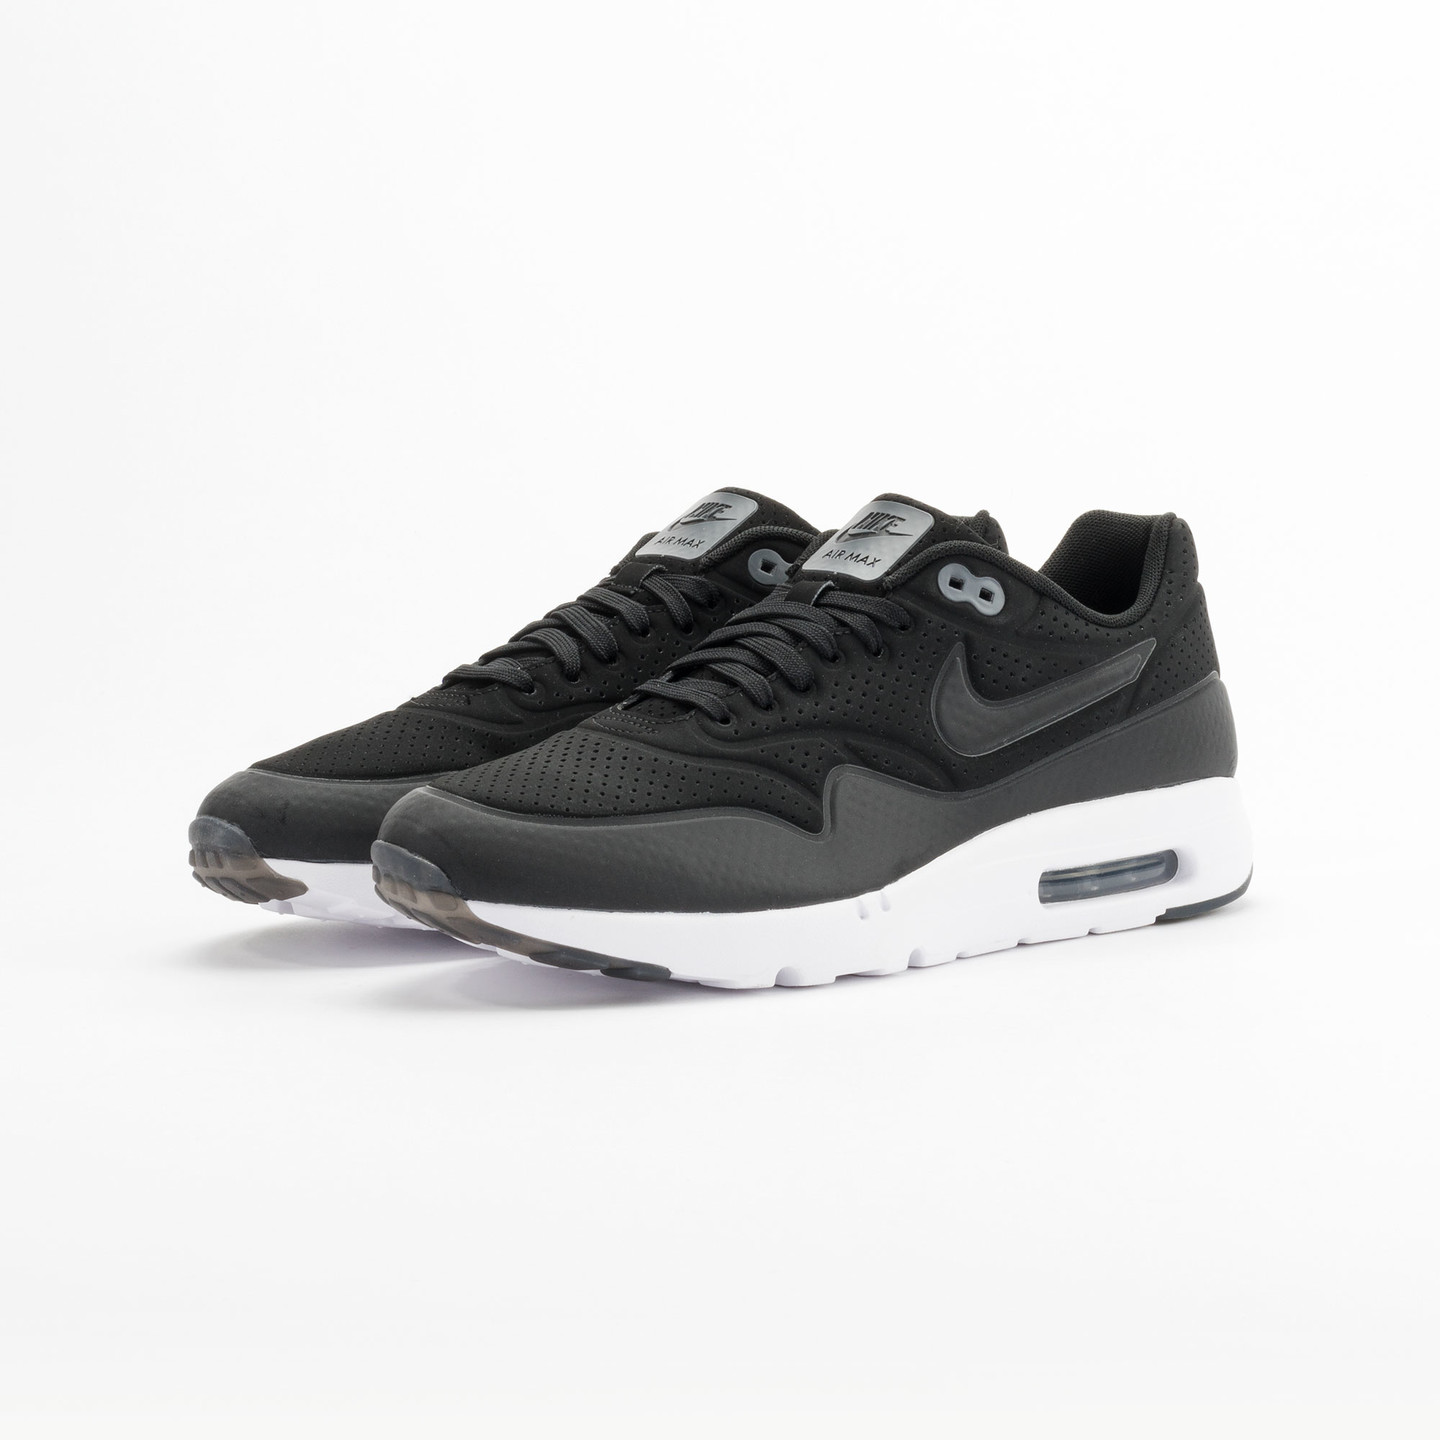 Nike Air Max 1 Ultra Moire Black Reflective / White 705297-010-44